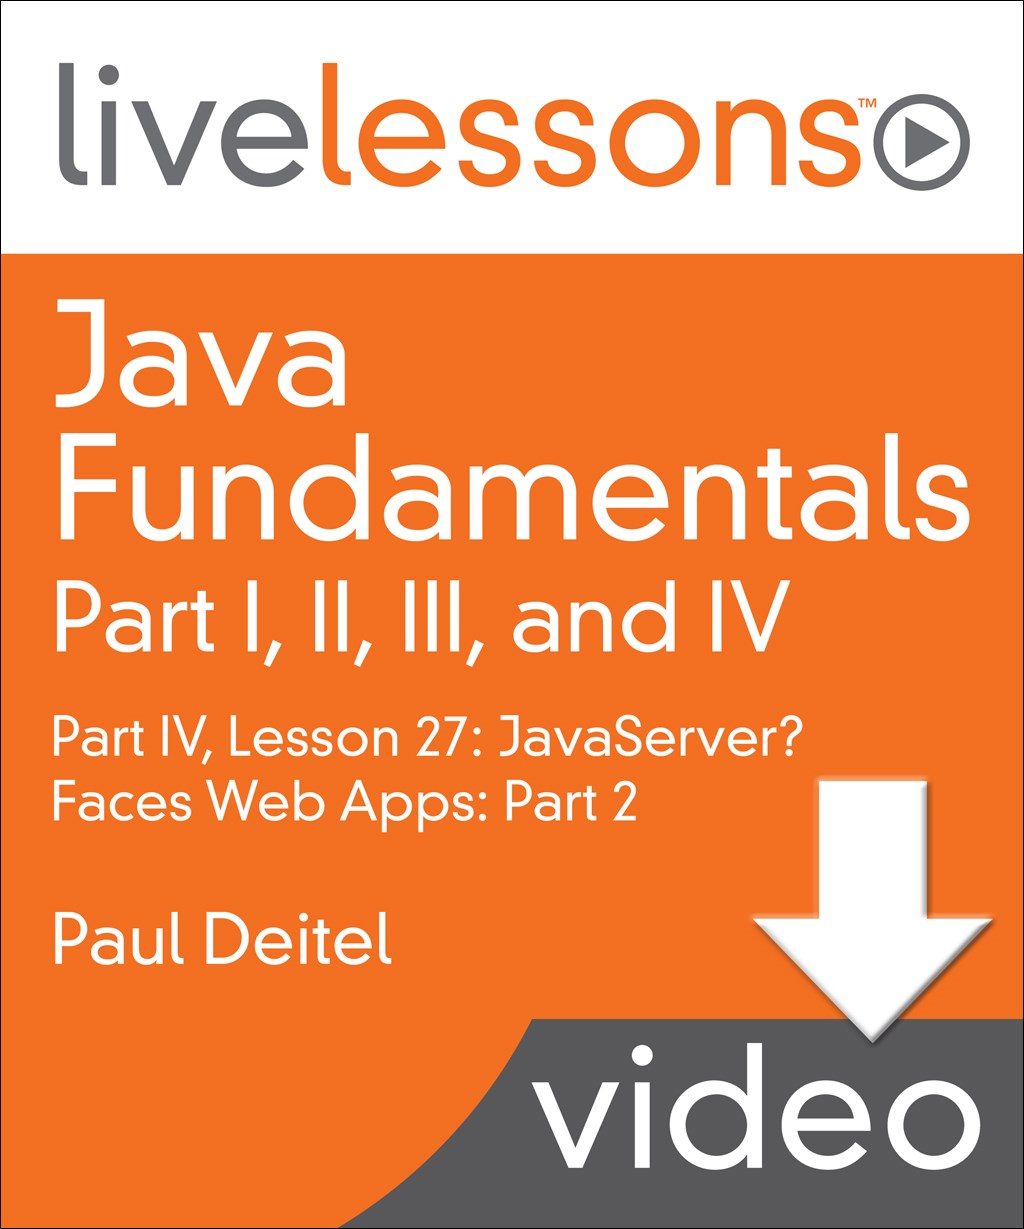 Java Fundamentals LiveLessons Parts I, II, III, and IV (Video Training): Part IV, Lesson 27: JavaServer? Faces Web Apps: Part 2, Downloadable Version